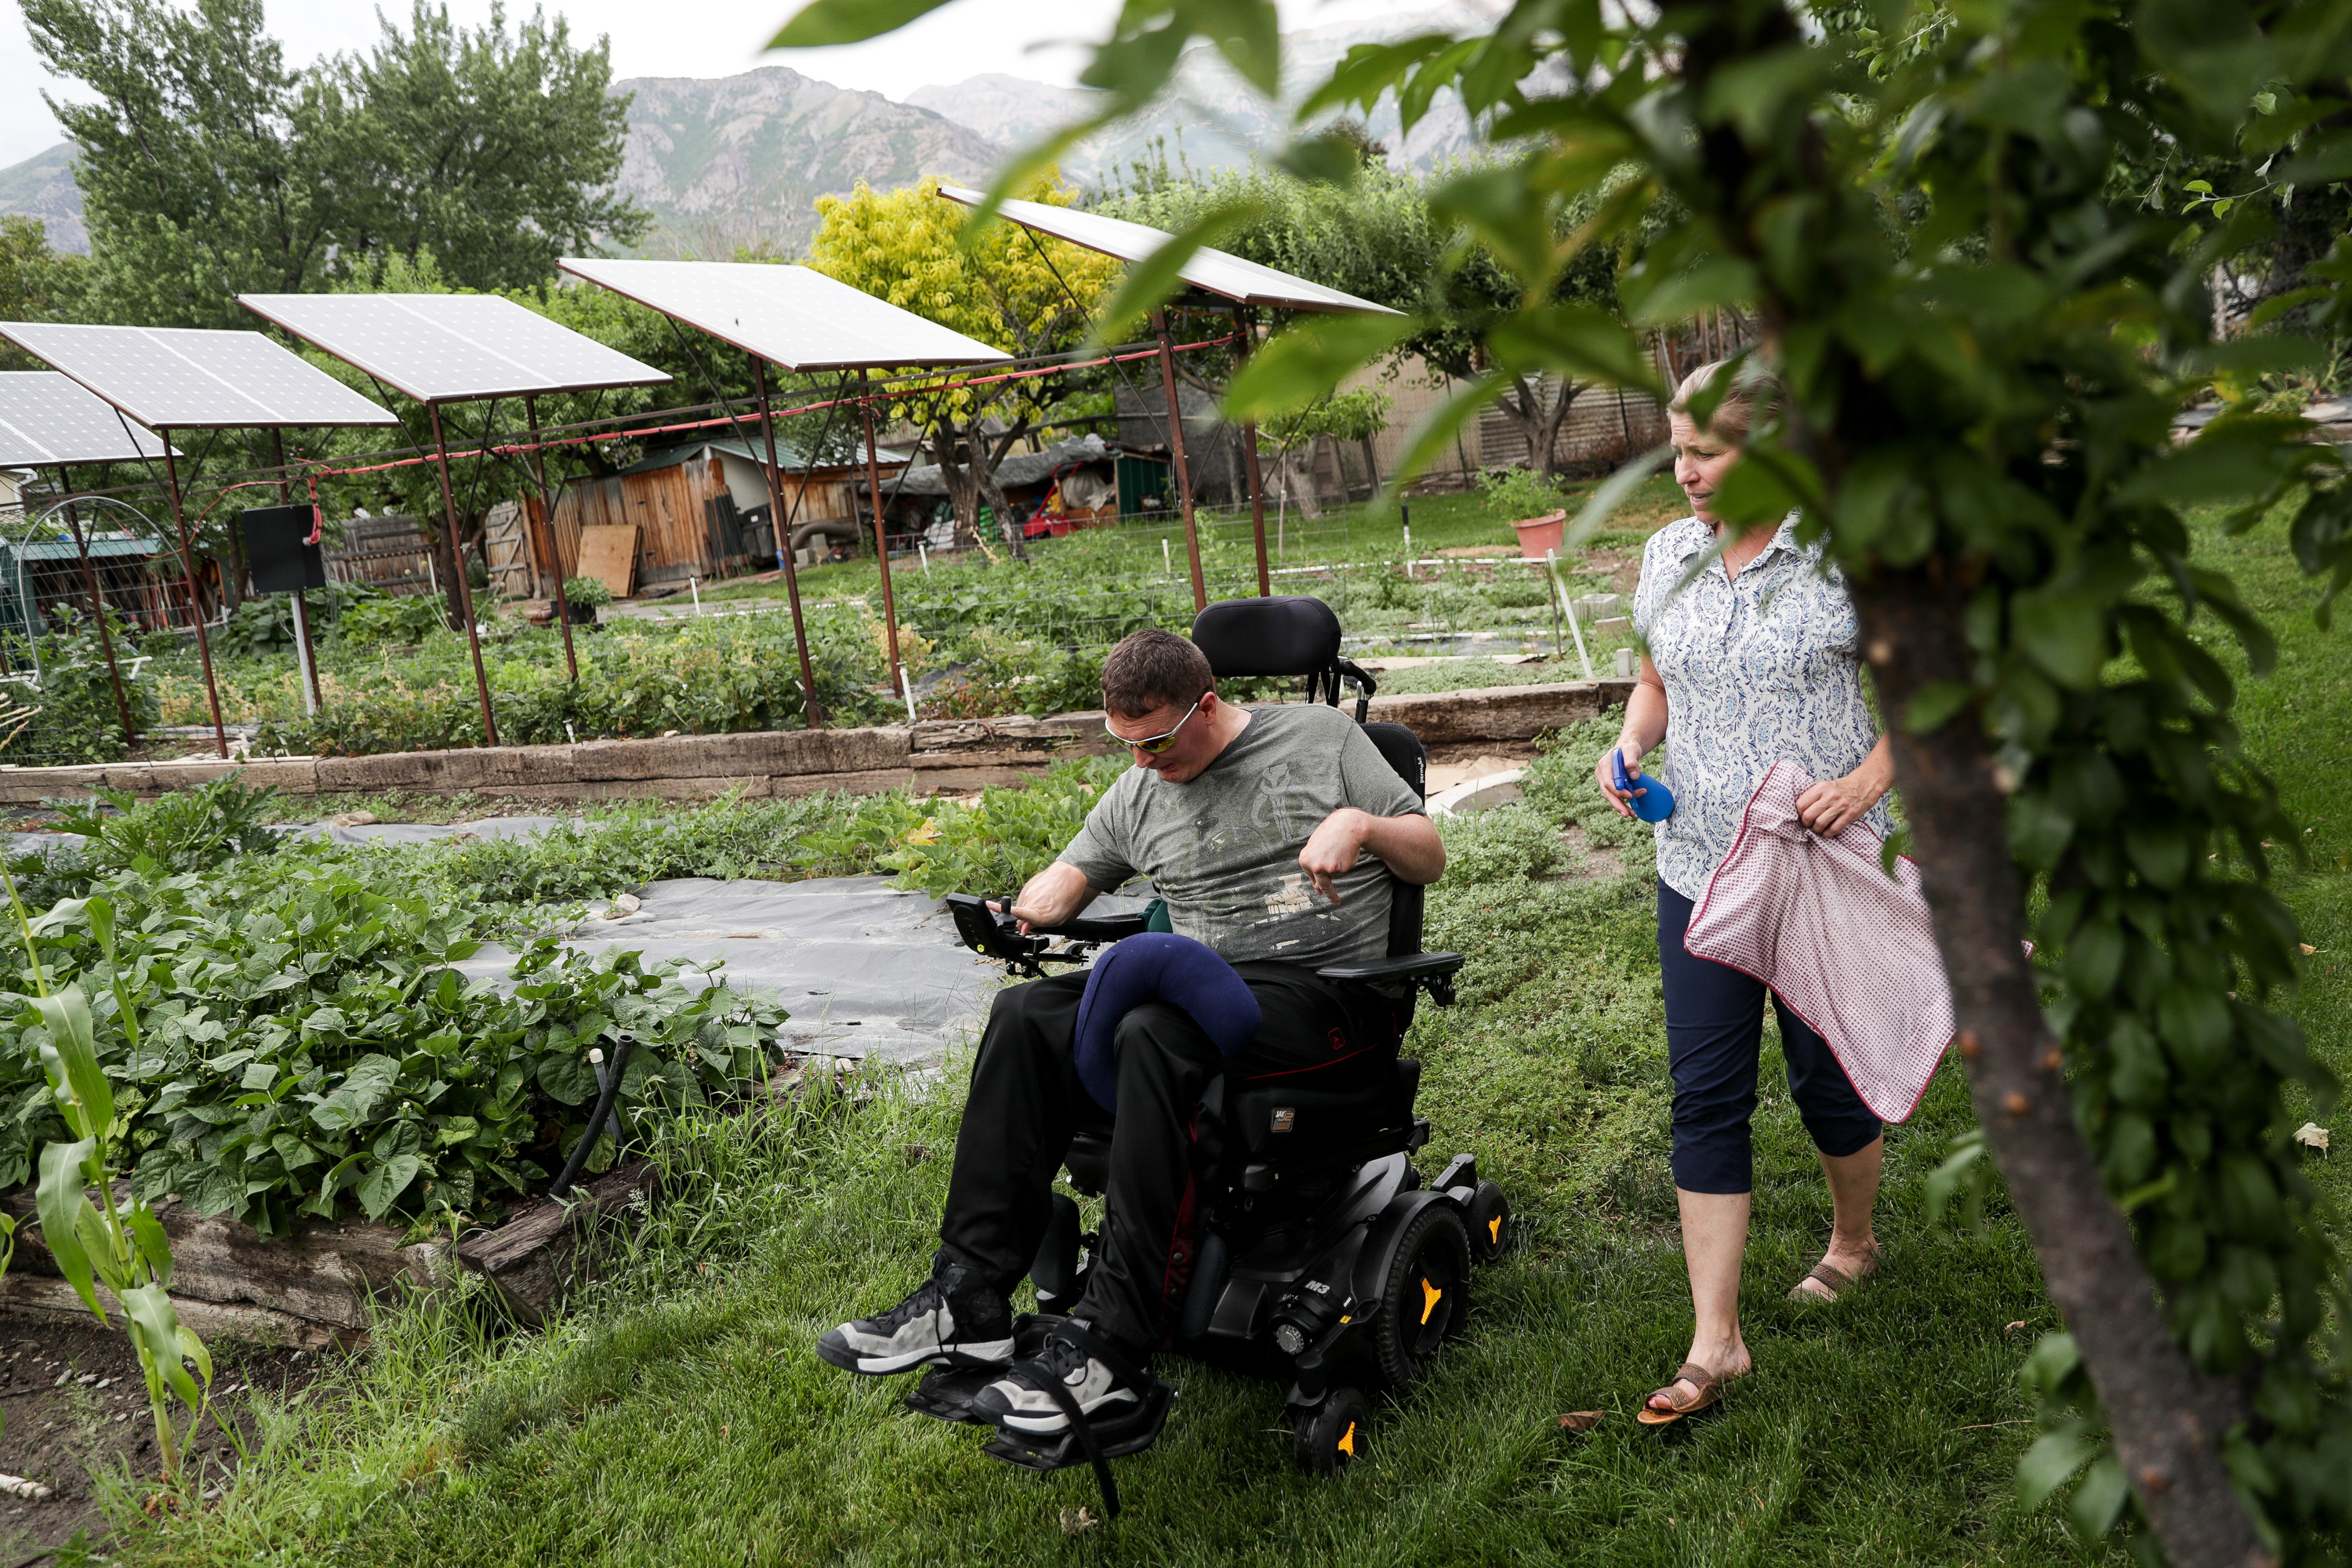 Orin Voorheis drives his motorized wheelchair, with caregiver Wendy Tobey close behind, in the garden outside his home in Pleasant Grove, Utah, on Tuesday, July 10, 2018.